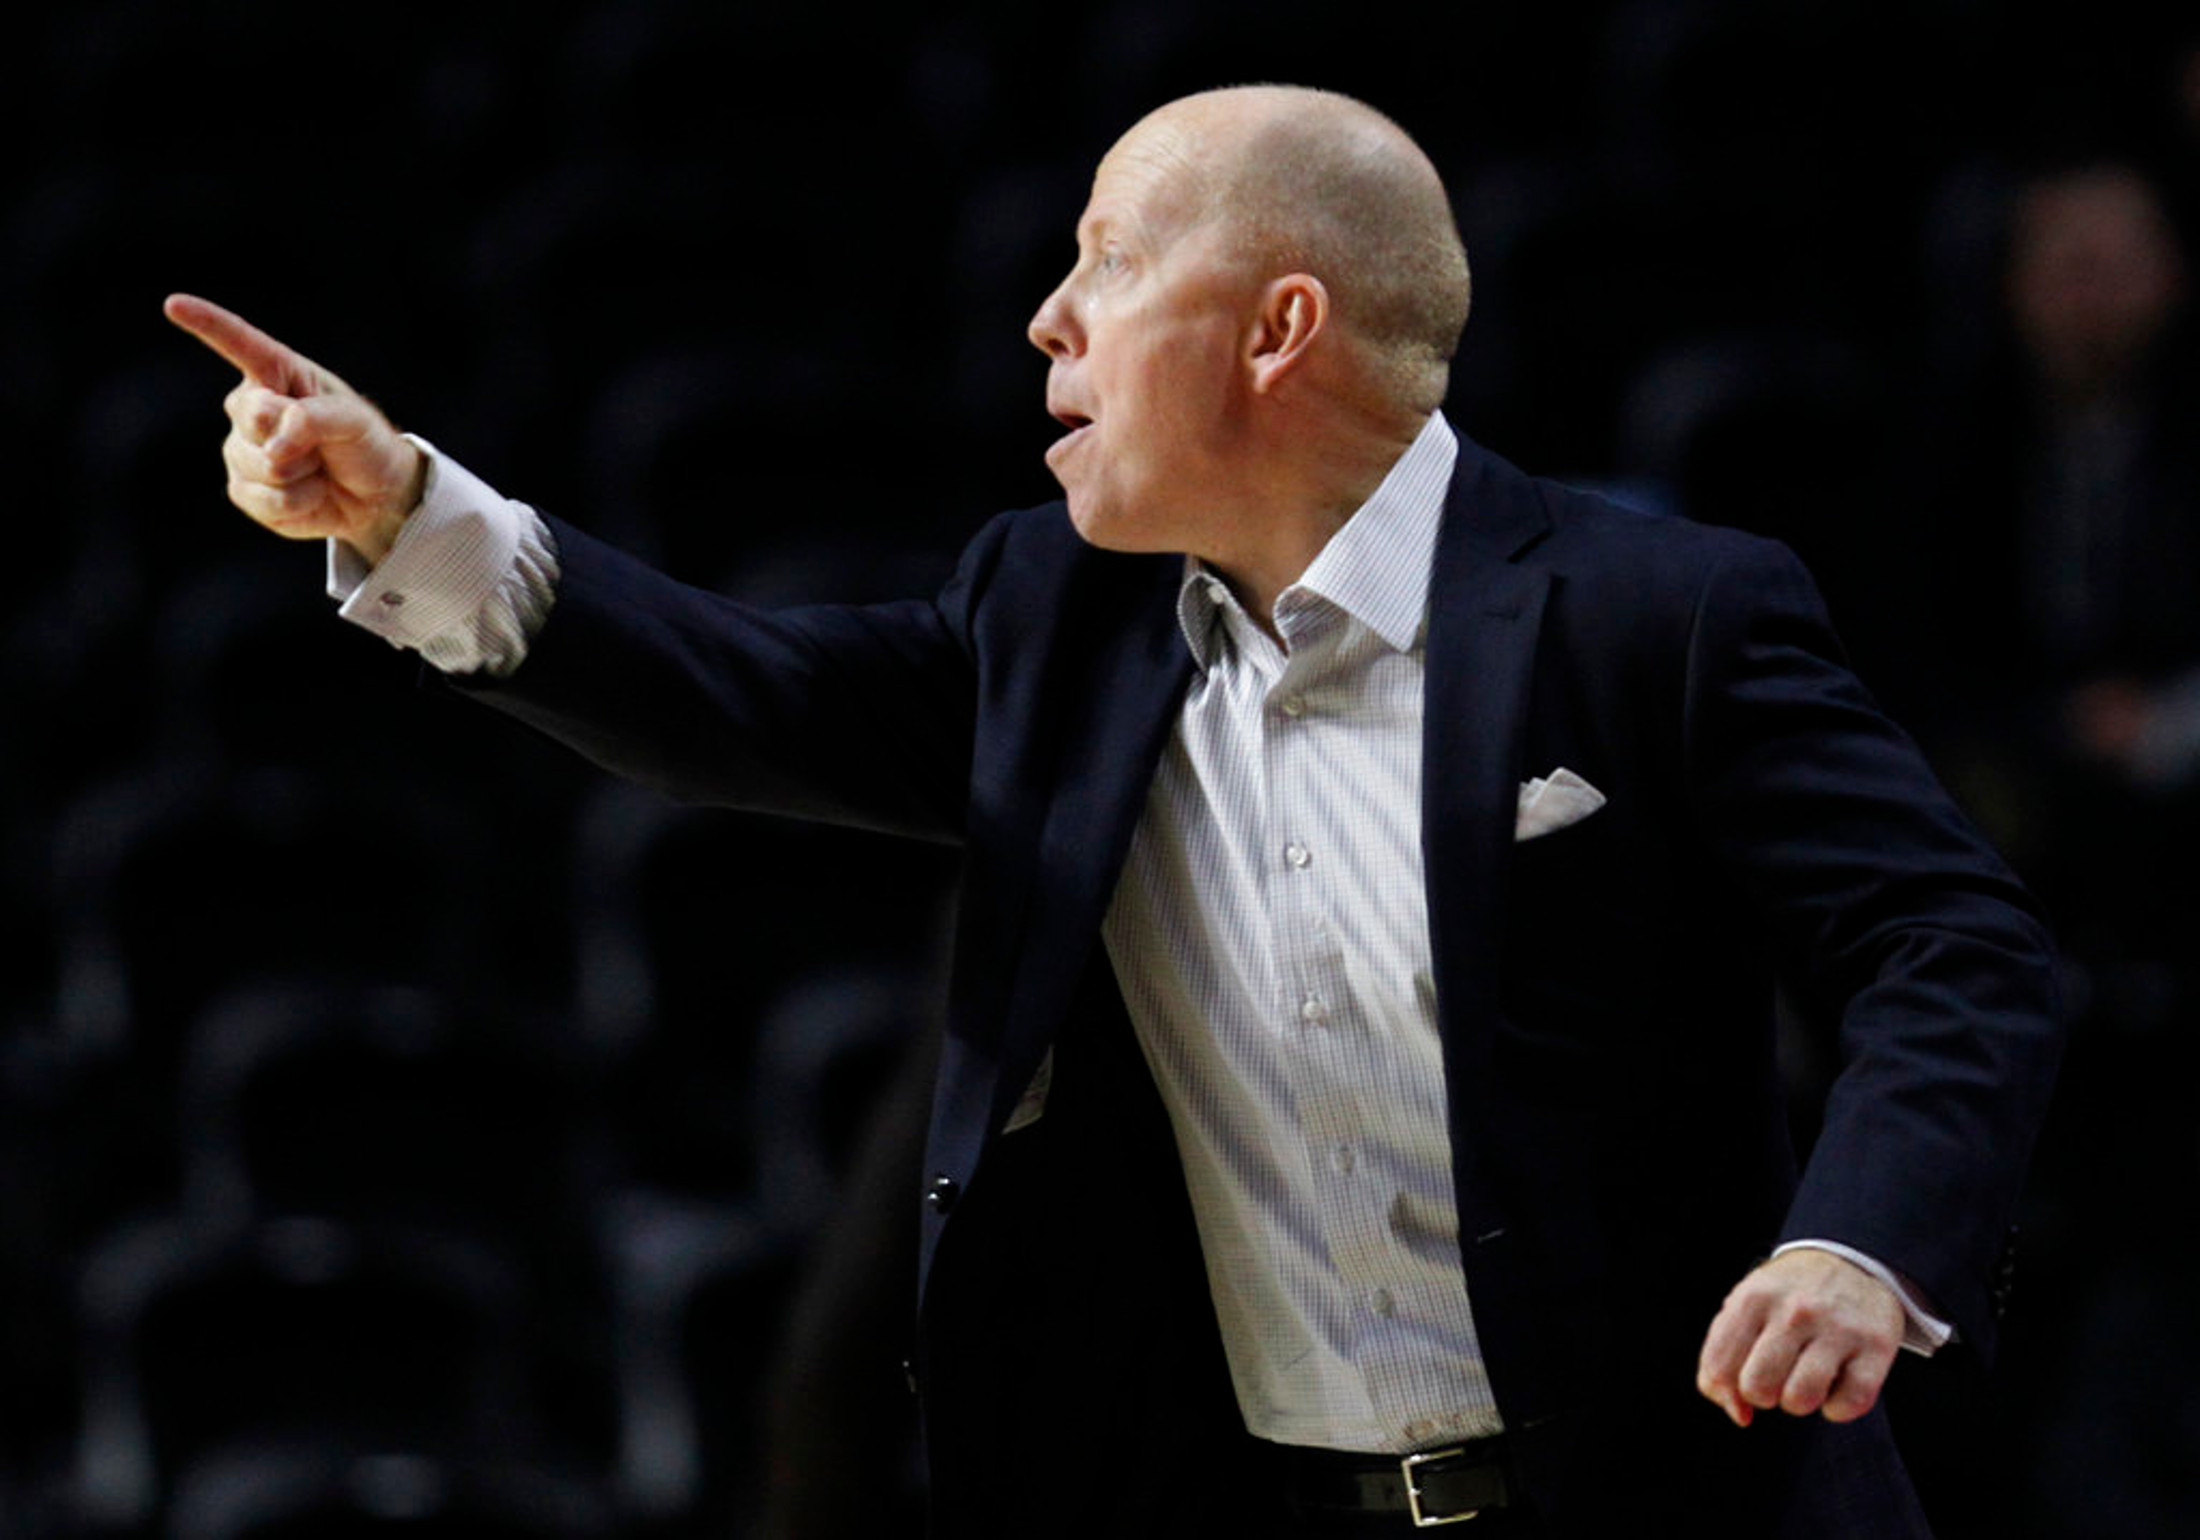 FILE - In this Jan. 4, 2018, file photo, Cincinnati head coach Mike Cronin shouts from the sideline during the first half of an NCAA college basketball game against Temple, in Philadelphia. The Bearcats had a resurgent season while playing away from home while their arena was refurbished, winning the American Athletic championship before losing in the second round of the NCAA Tournament. They're looking to build upon that success as they move back into their on-campus arena this season. (AP Photo/Laurence Kesterson, File)